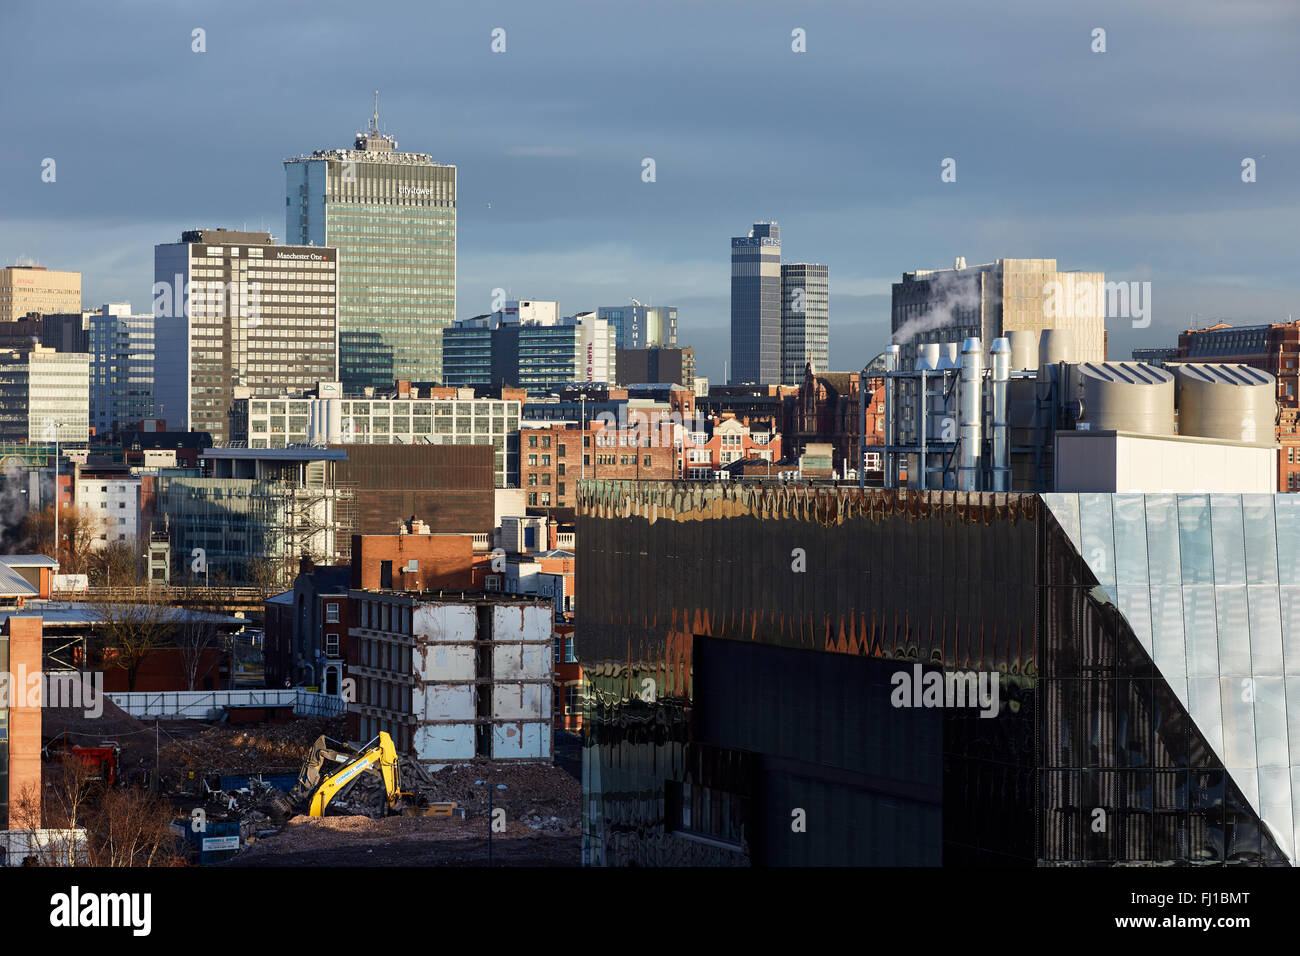 Manchester skyline view - Stock Image